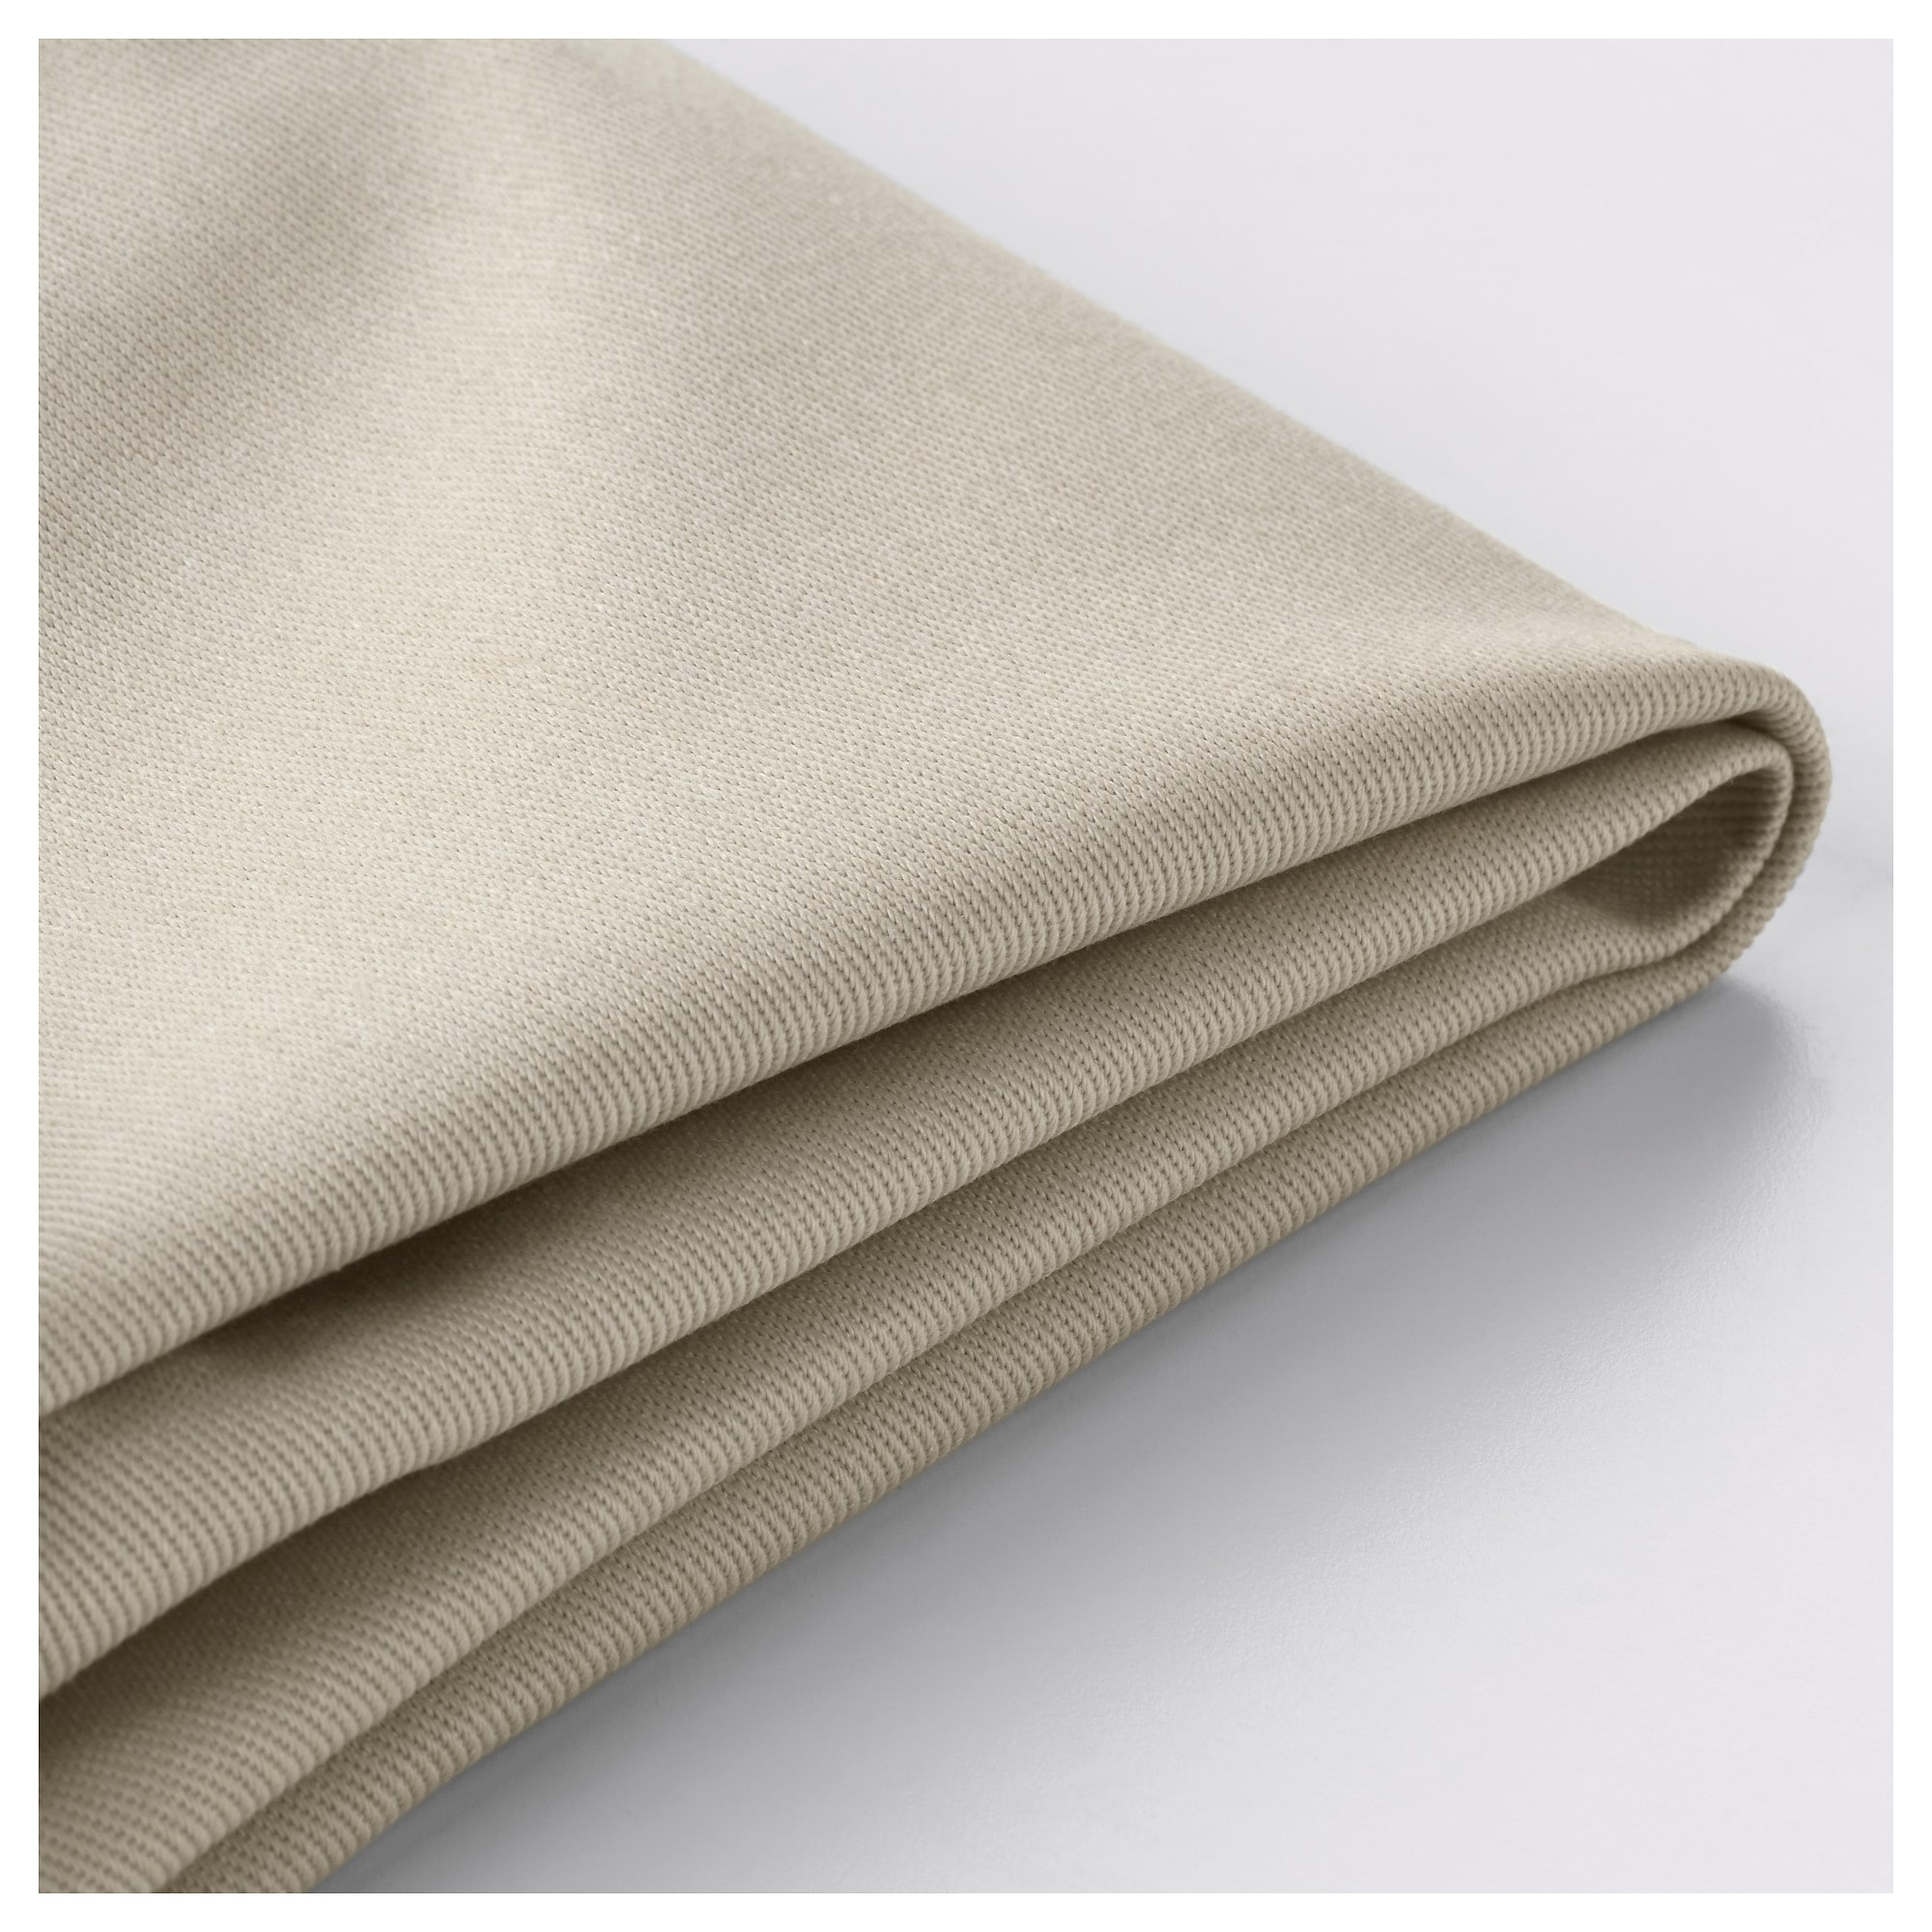 BACKABRO Bezug 3er Bettsofa, Tygelsjö Beige